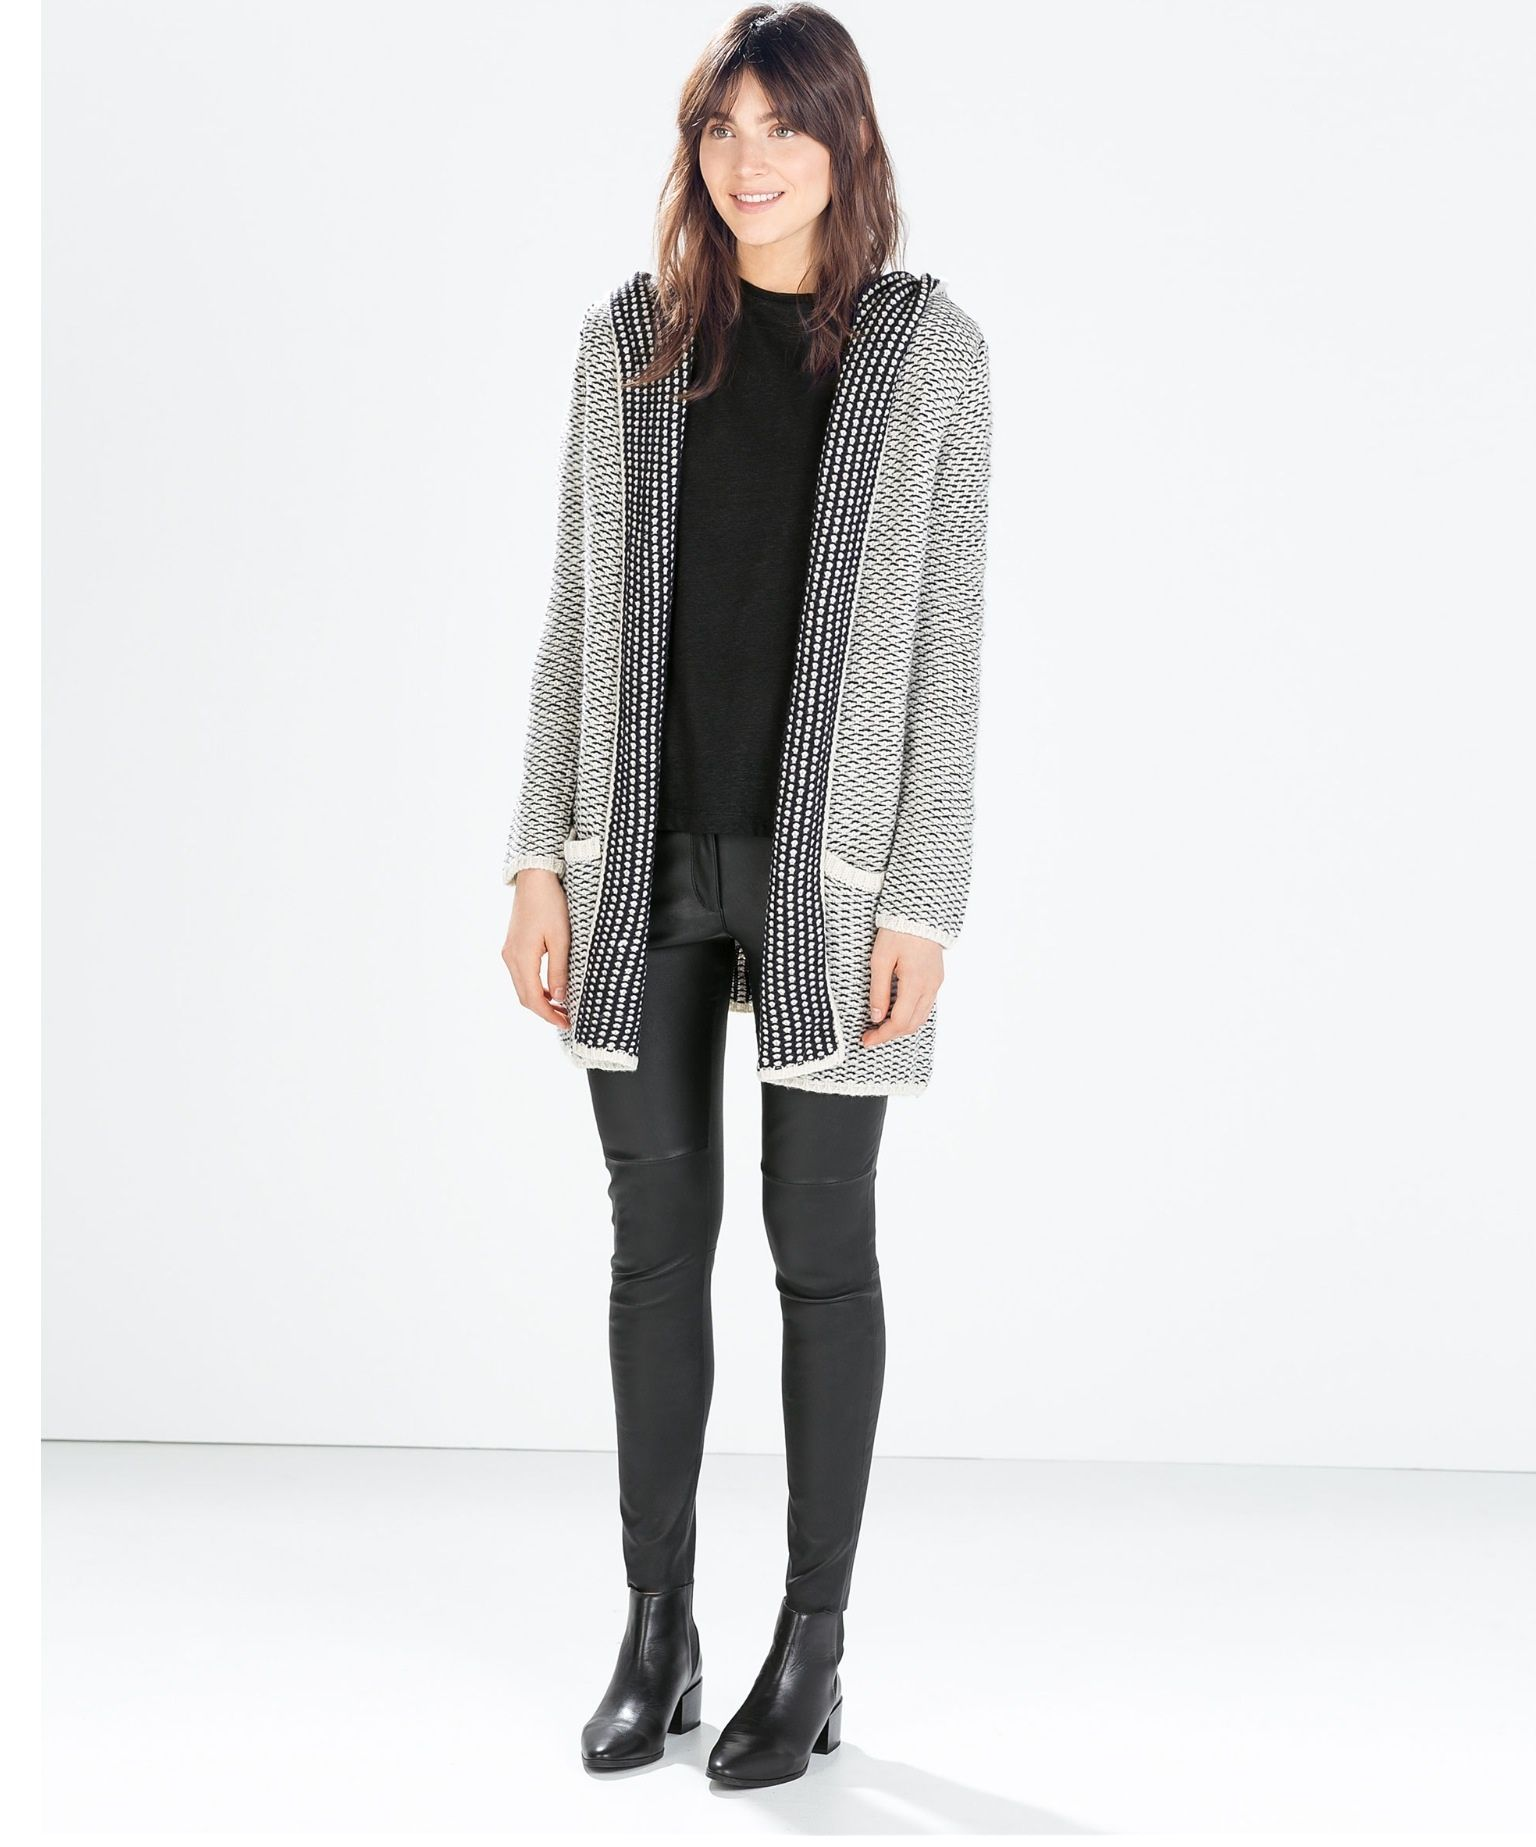 Zara KNIT HOODED CARDIGAN £35.99 | Fashion | Pinterest | Hooded ...